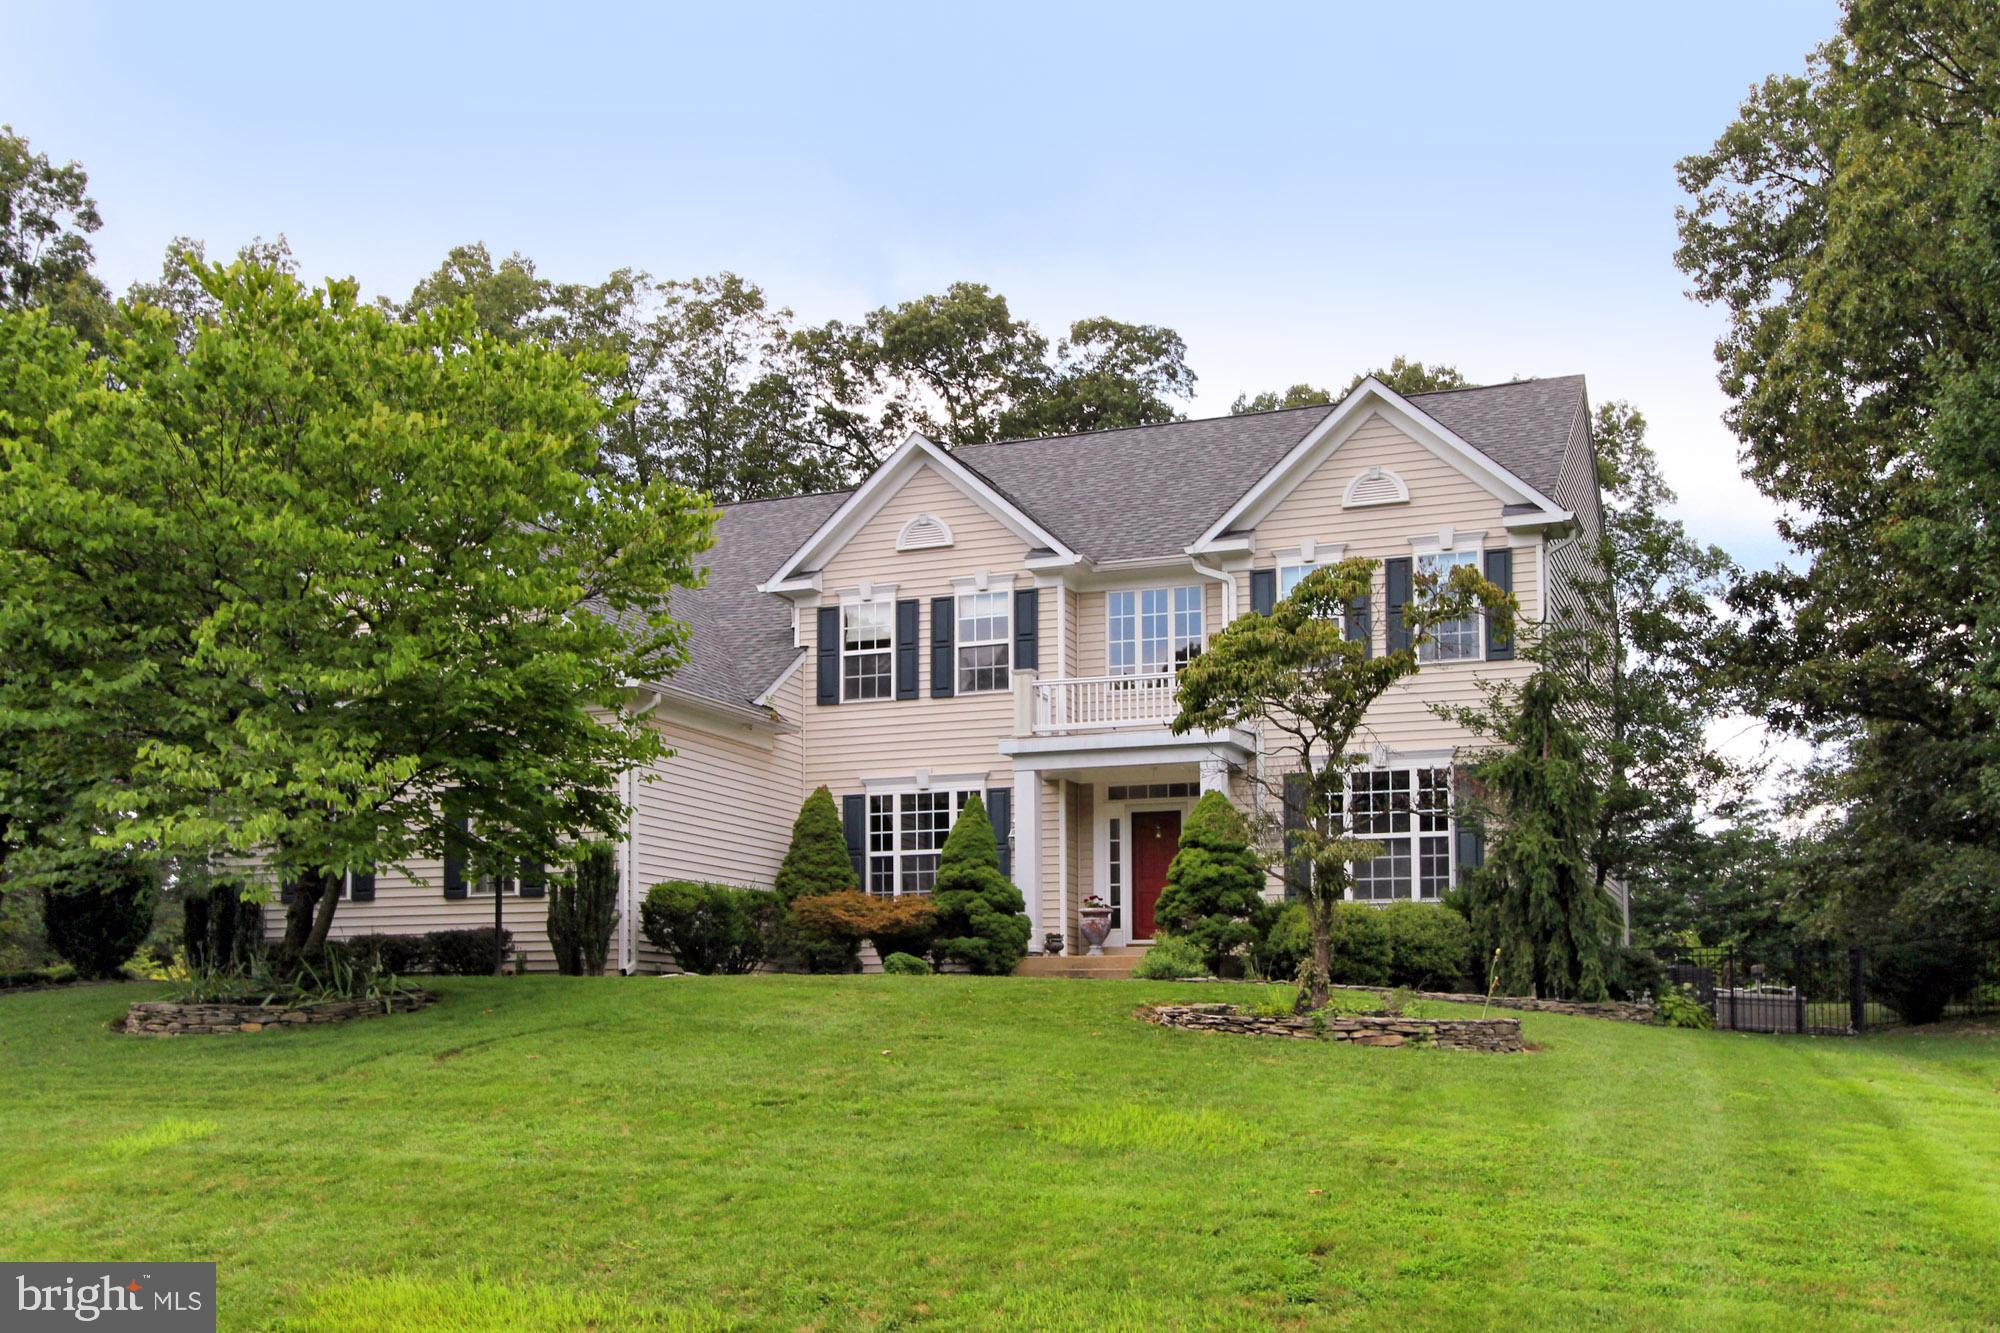 This beautiful 4 Bedroom, 4.5 Bath Colonial is located on the end of a quiet cul-de-sac in the sought-after community of Hollymeade.   Features a spacious floor plan with three finished levels on almost 1-acre homesite and built-in heated swimming pool.  Appointments include a 3 car garage, hardwood floors, and new carpet in the bedrooms, family room, and basement.  The kitchen has been updated with granite and stainless appliances.  The upstairs laundry room has a high-efficiency, front-loading washer, and dryer.  The lower level features a full bath, workout room, a generous living area, and a spacious storage room. Recent maintenance and renovations include a new roof, freshly paved driveway, and beautifully renovated bathrooms.  Hollymeade is in close proximity to top-rated Fairfax County schools, shopping, and the famous Lorton Workhouse Arts Center!